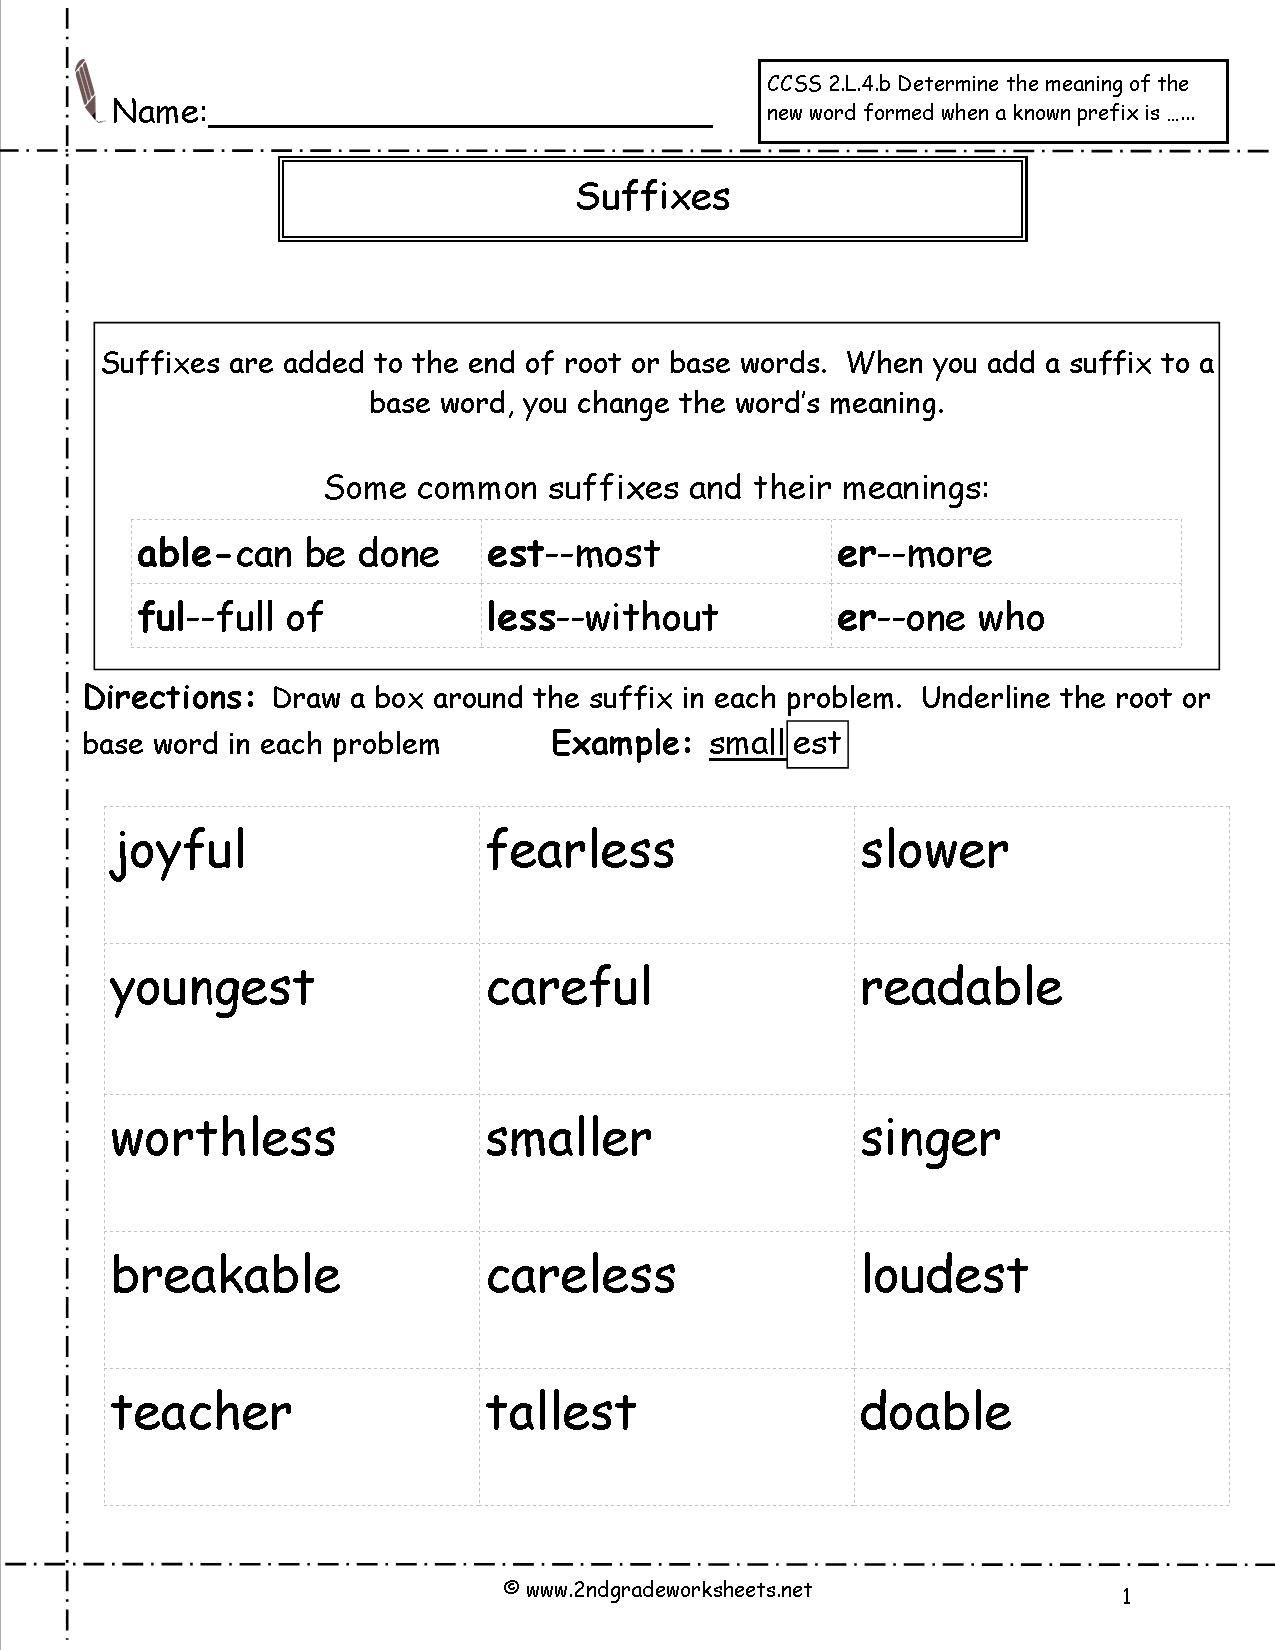 Suffixes Worksheets for 3rd Grade 41 Innovative Prefix Worksheets for You